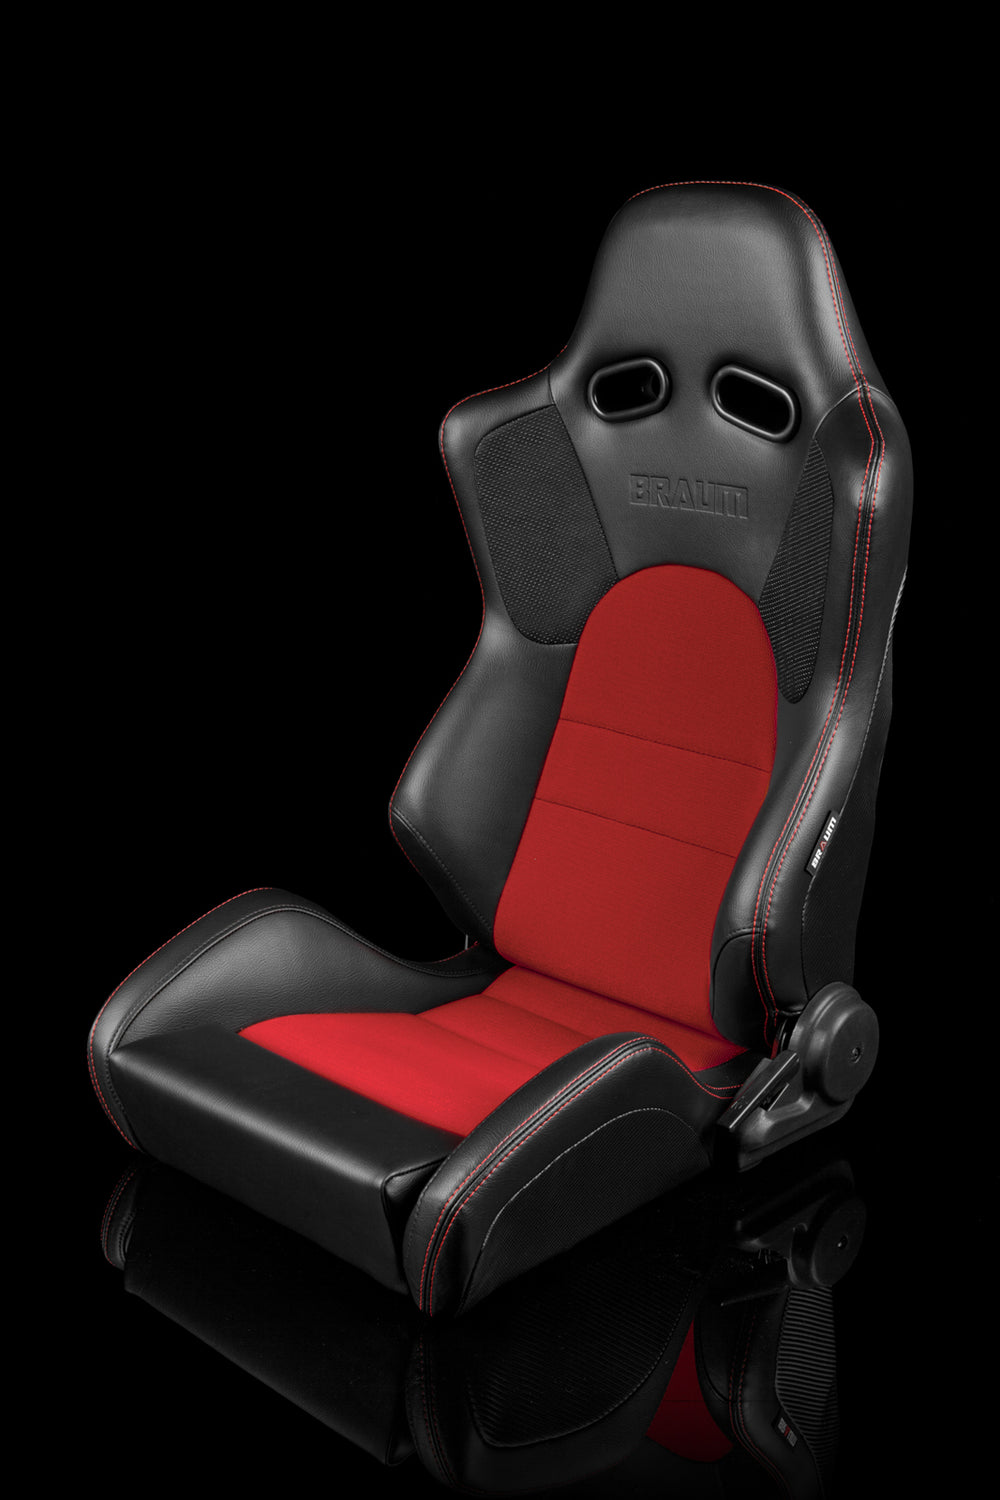 ADVAN SERIES RACING SEATS (BLACK & RED) – PAIR